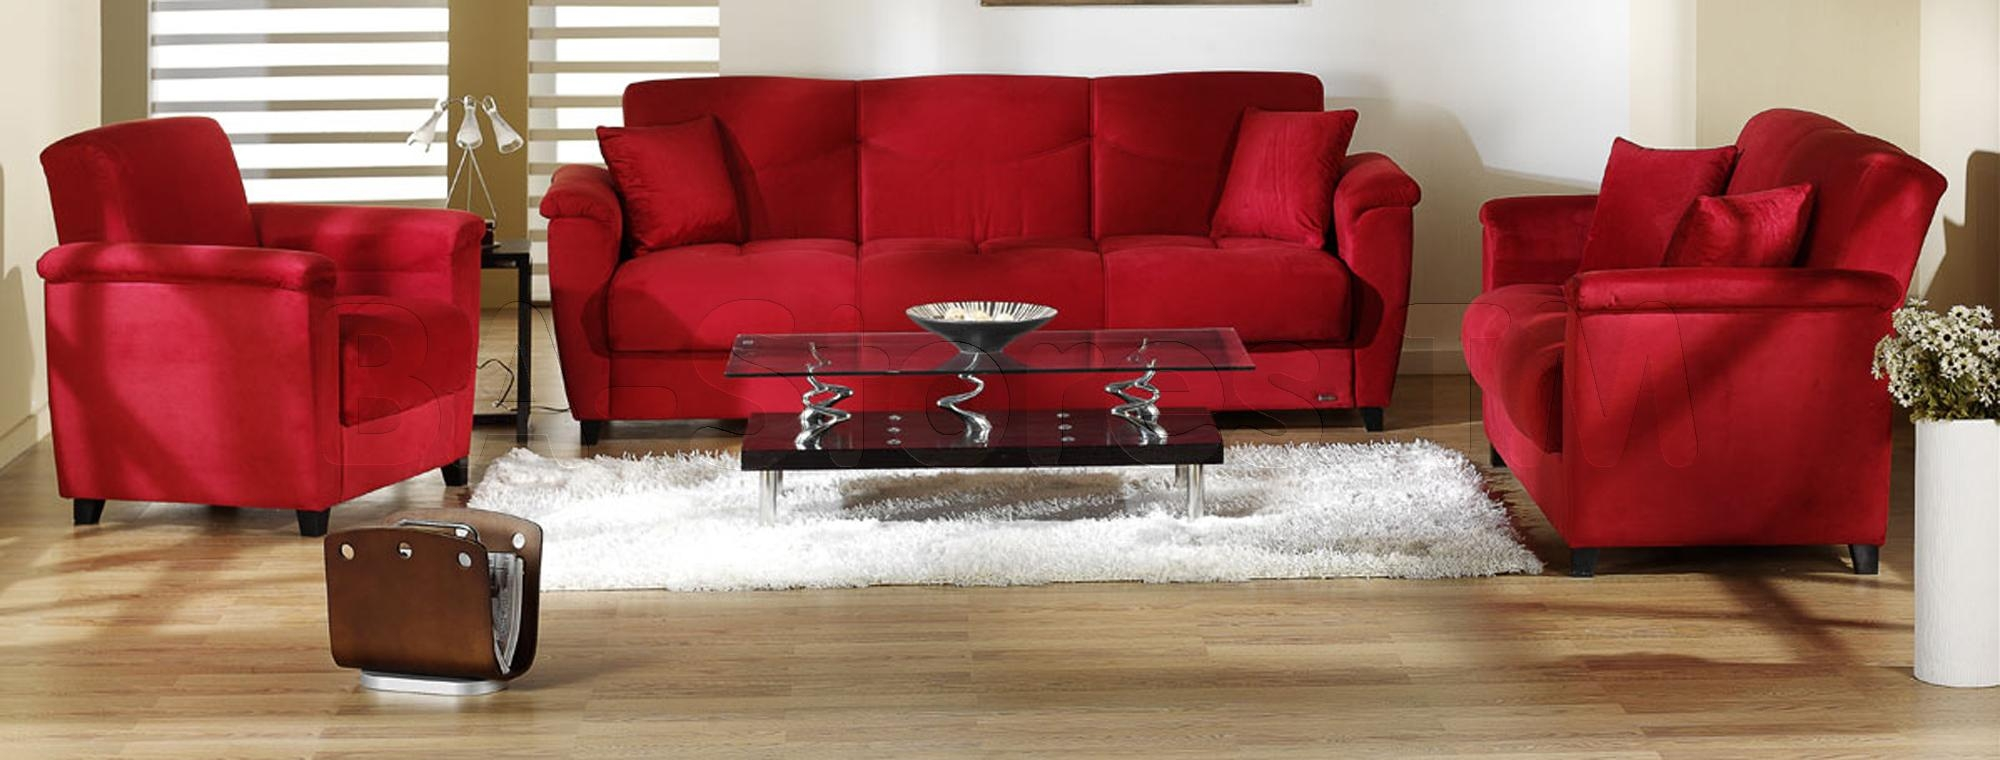 Red Living Room Sets – Living Room Throughout Red Sofas And Chairs (Image 12 of 20)